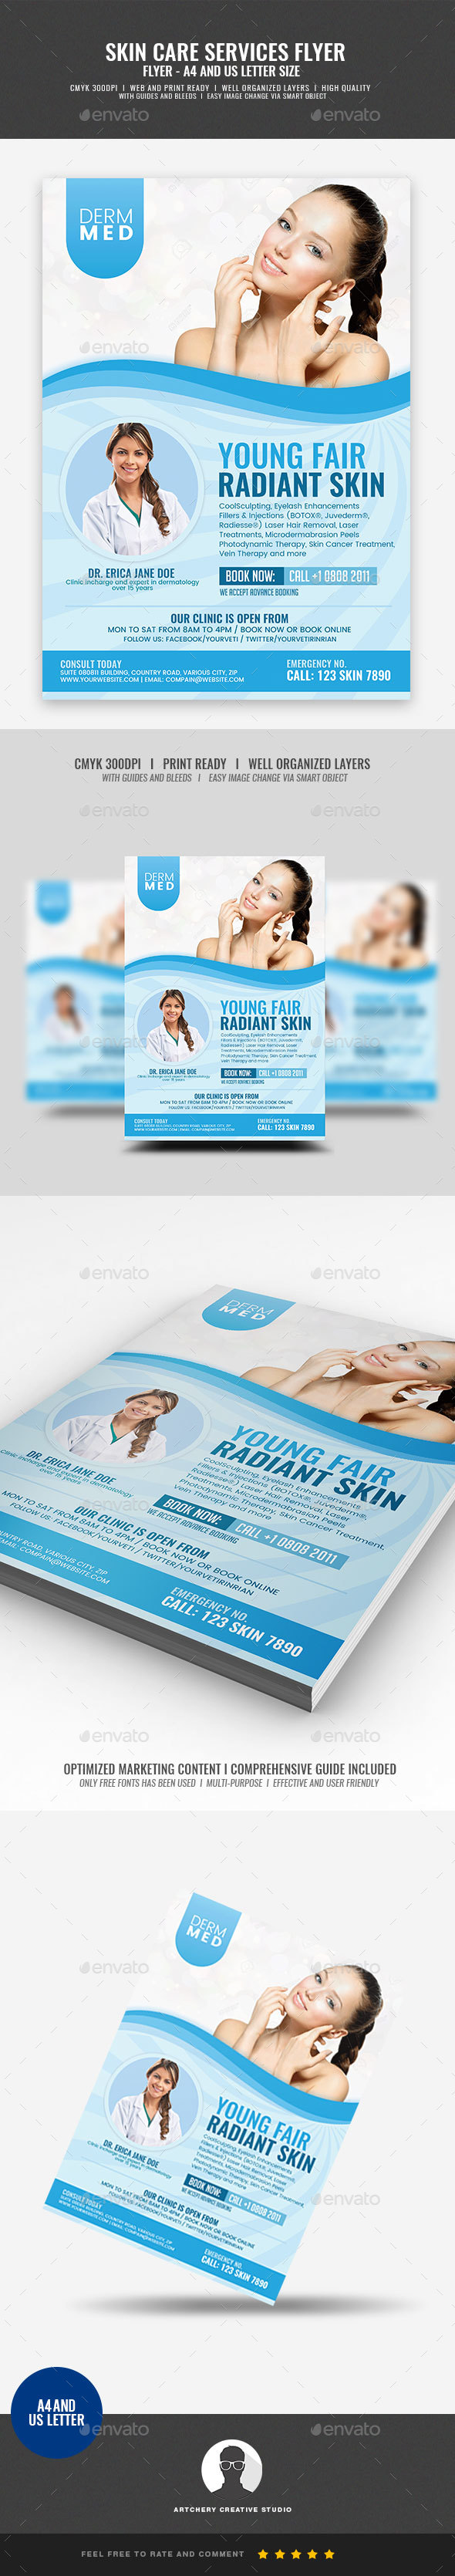 Skin Care Services Flyer - Corporate Flyers